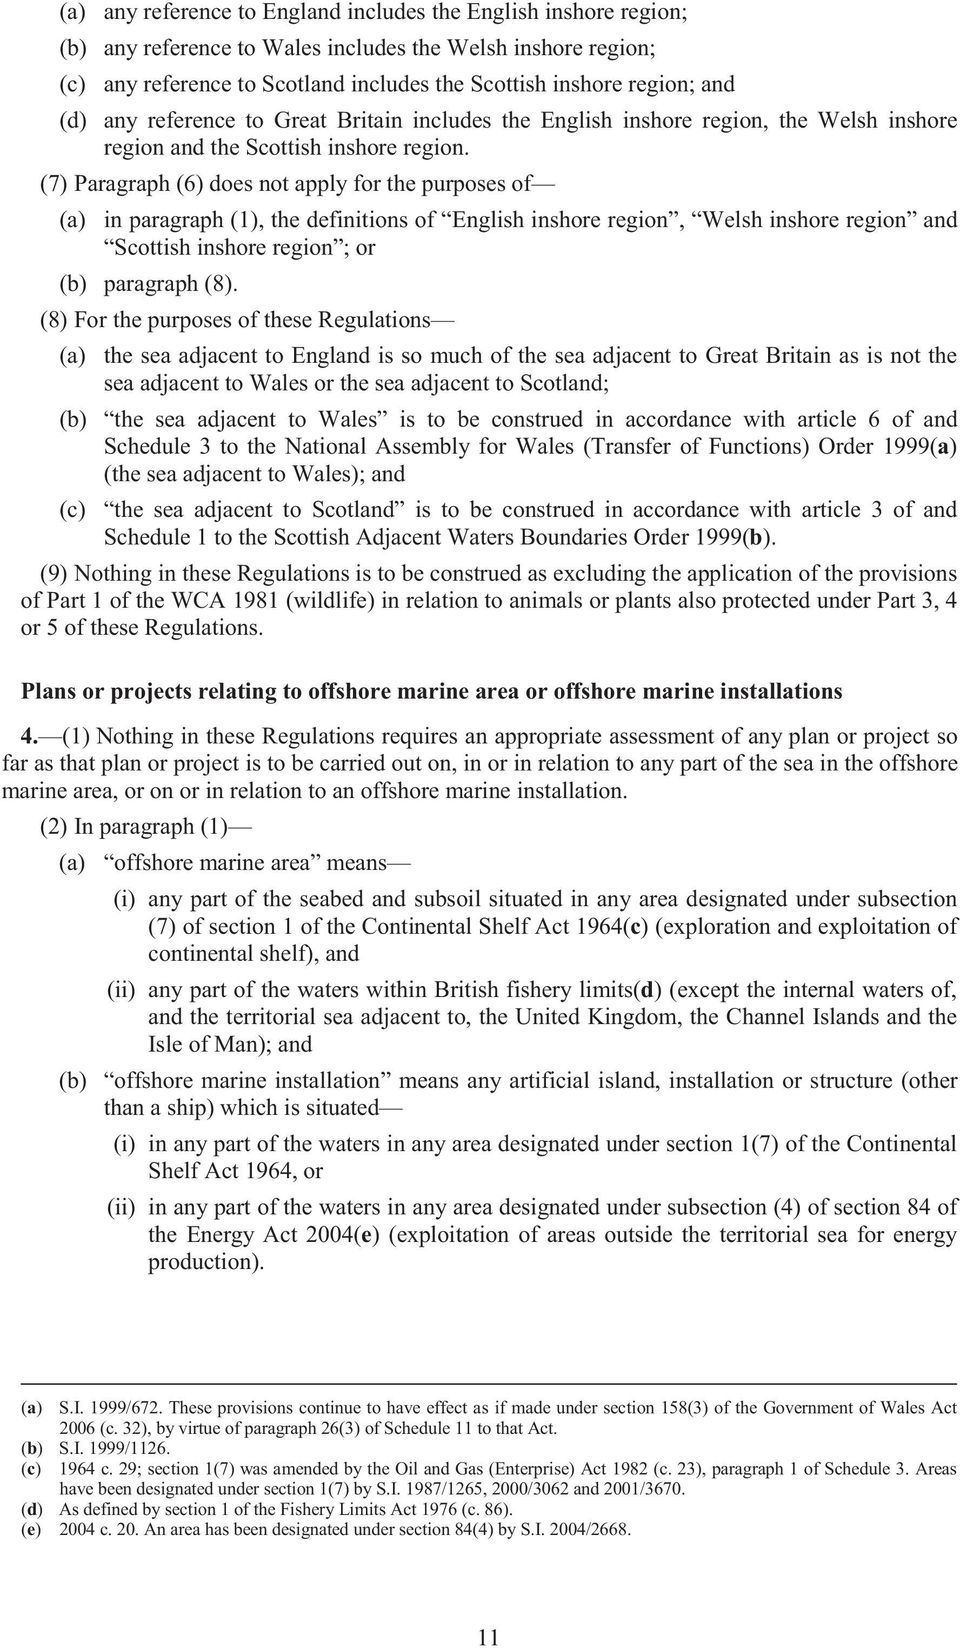 (7) Paragraph (6) does not apply for the purposes of (a) in paragraph (1), the definitions of English inshore region, Welsh inshore region and Scottish inshore region ; or (b) paragraph (8).